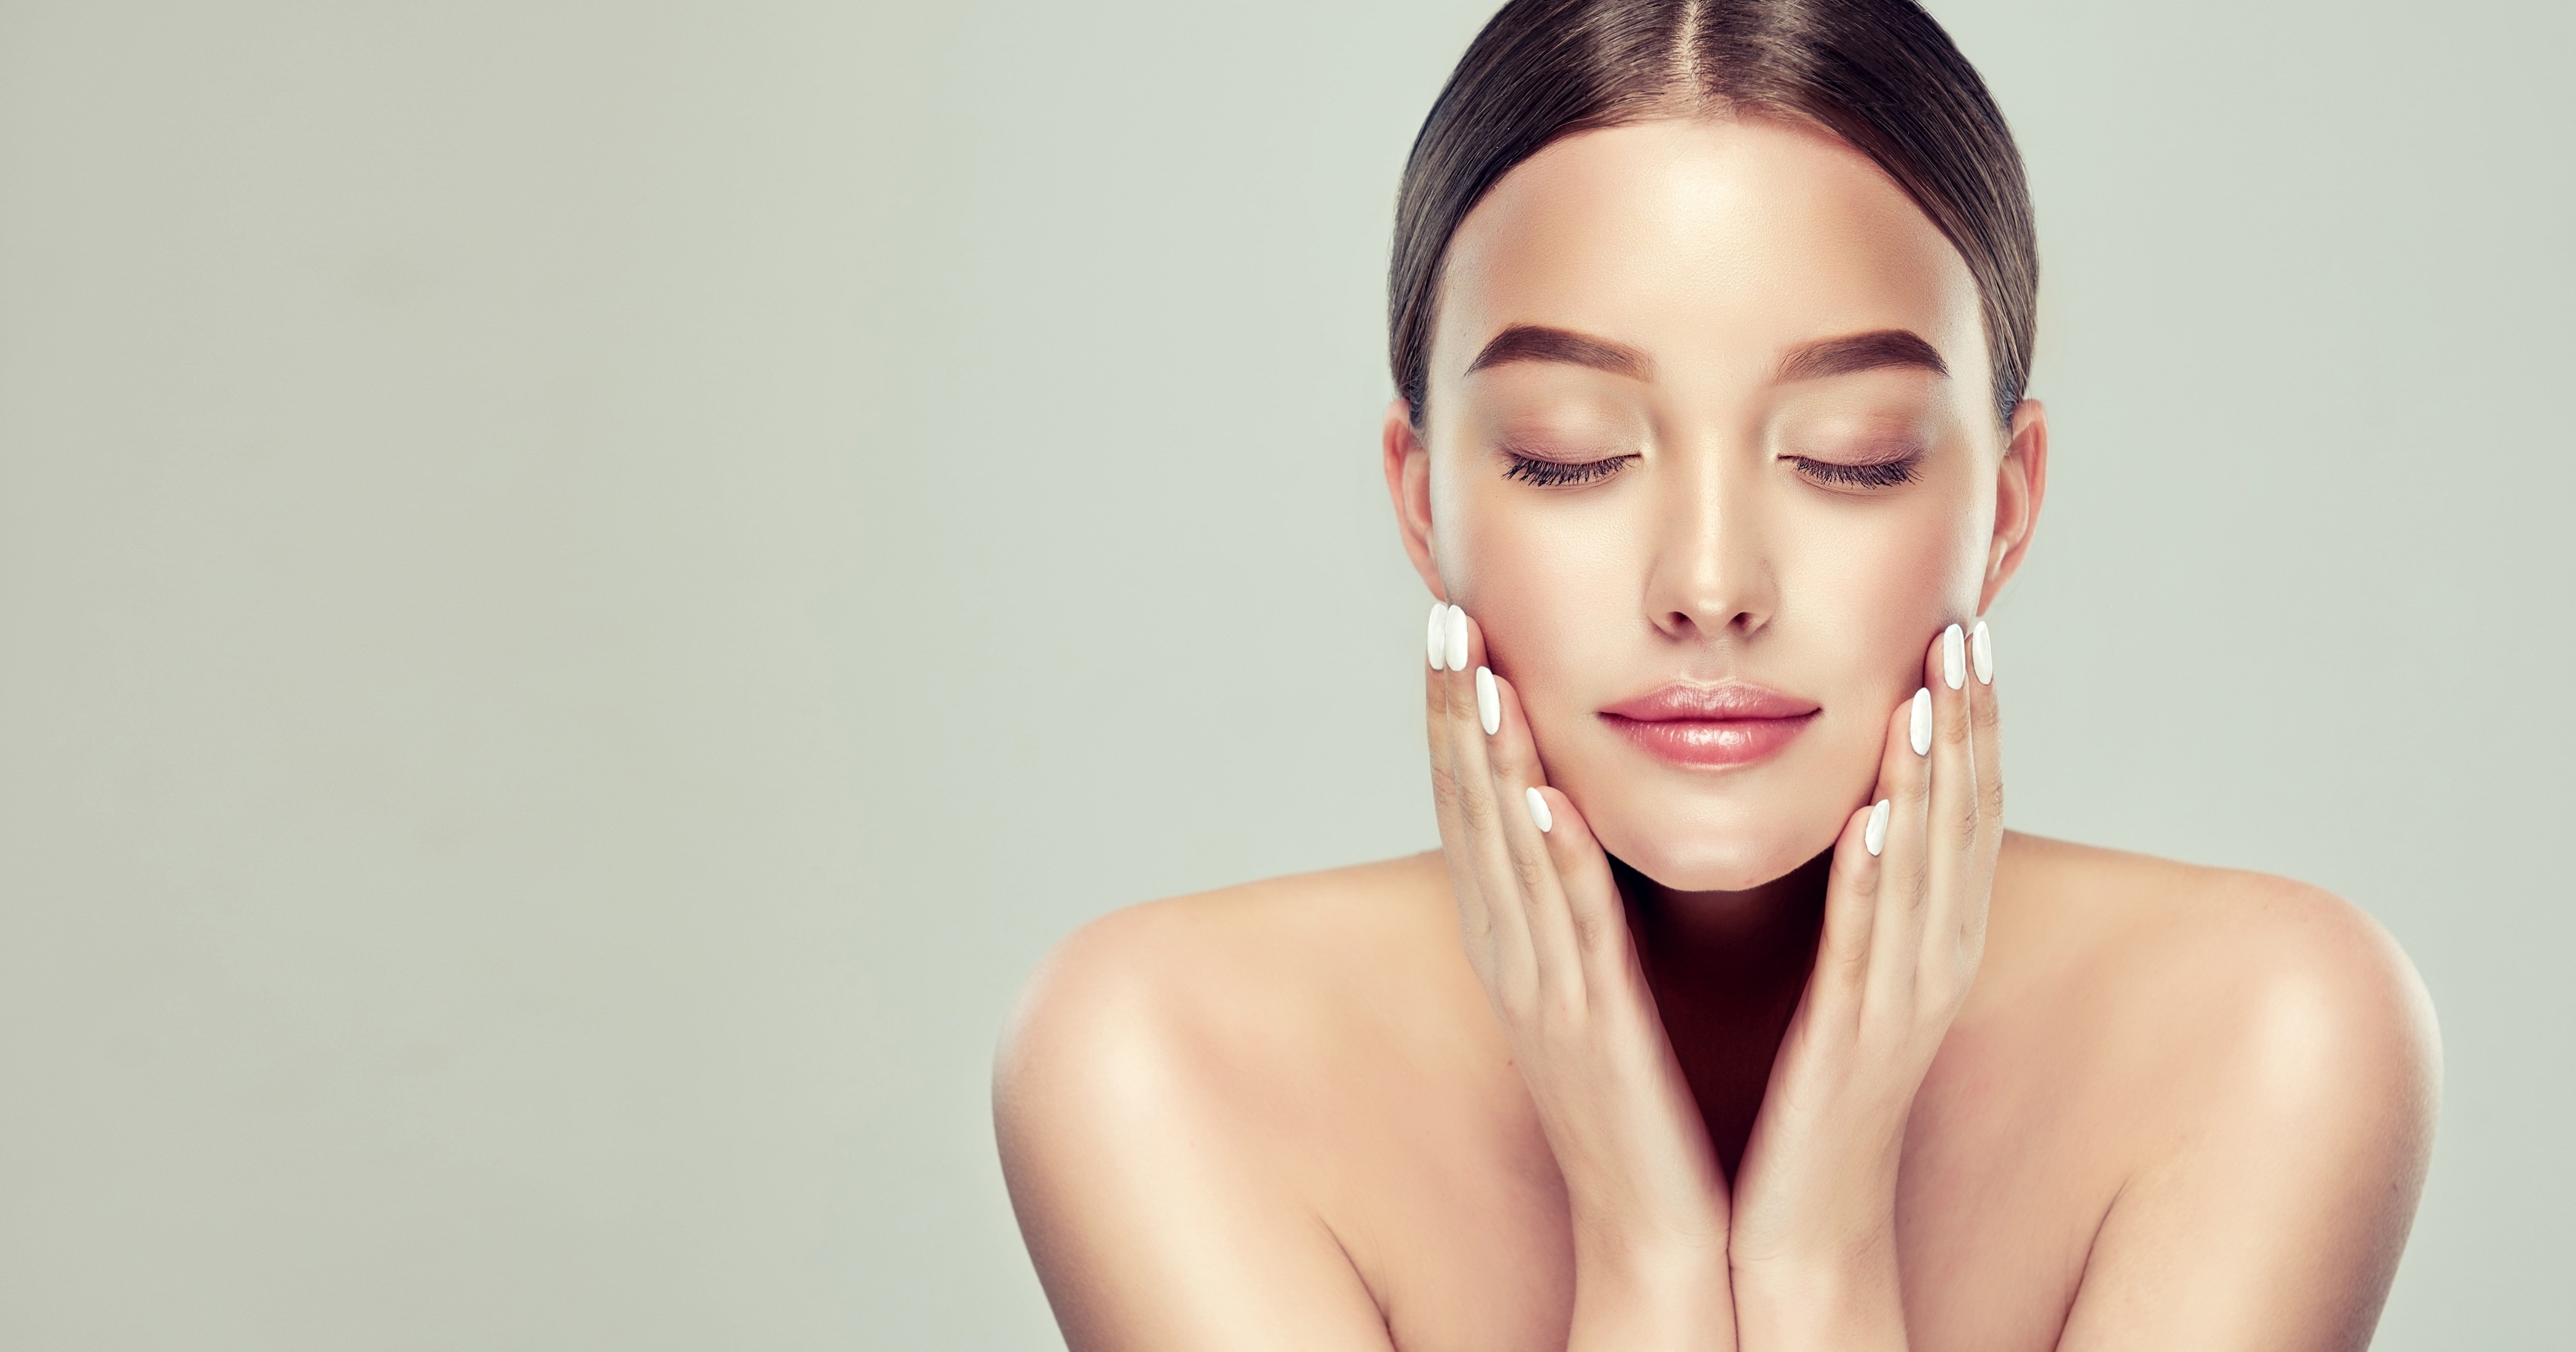 Facial Surgery In Scottsdale The Shaw Center